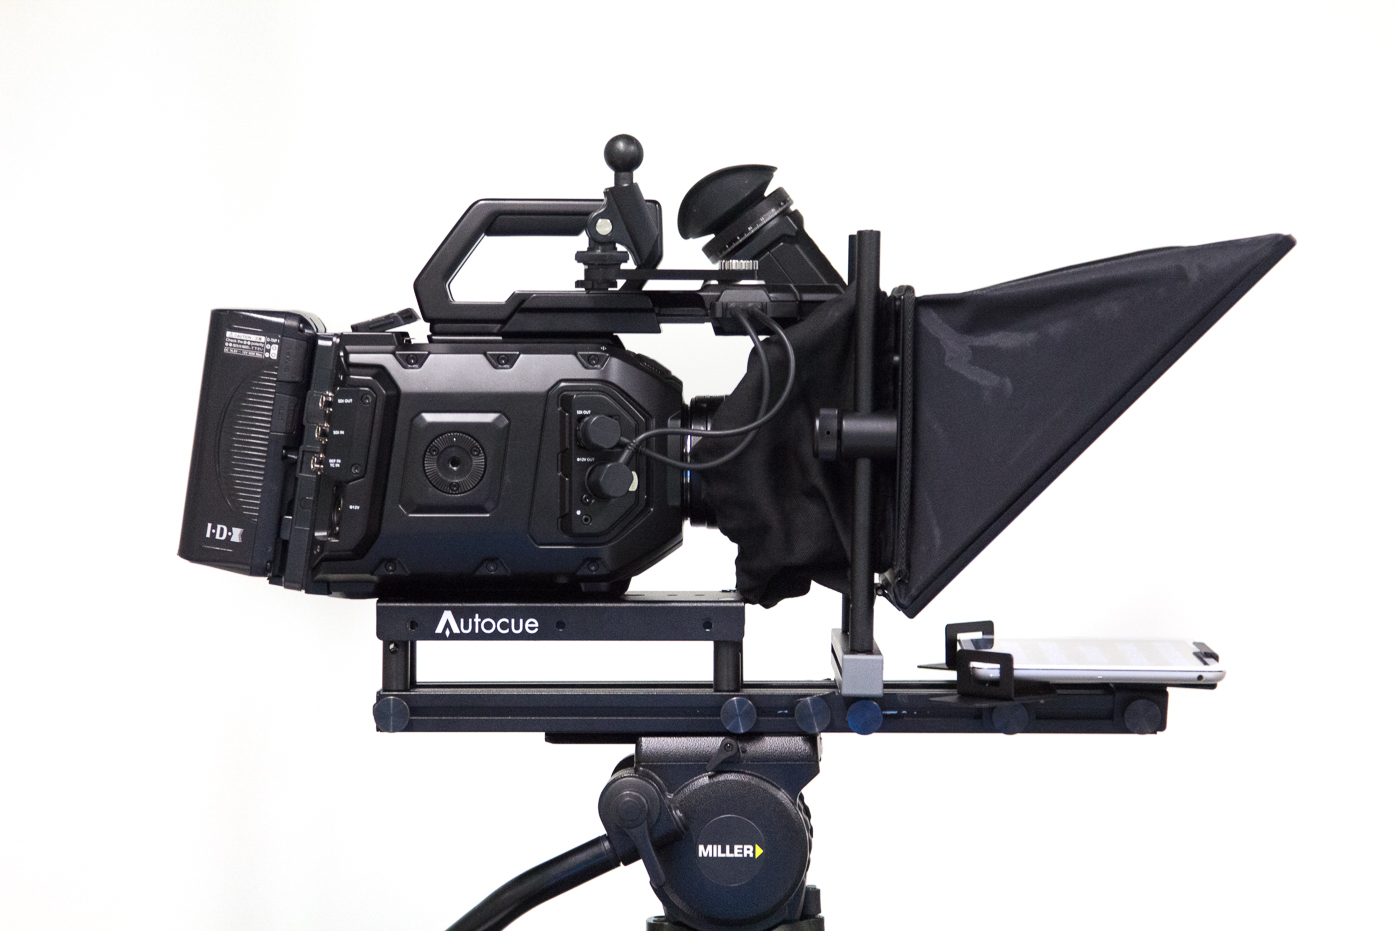 Autocue iPad Teleprompter Review by Pro Video Coalition